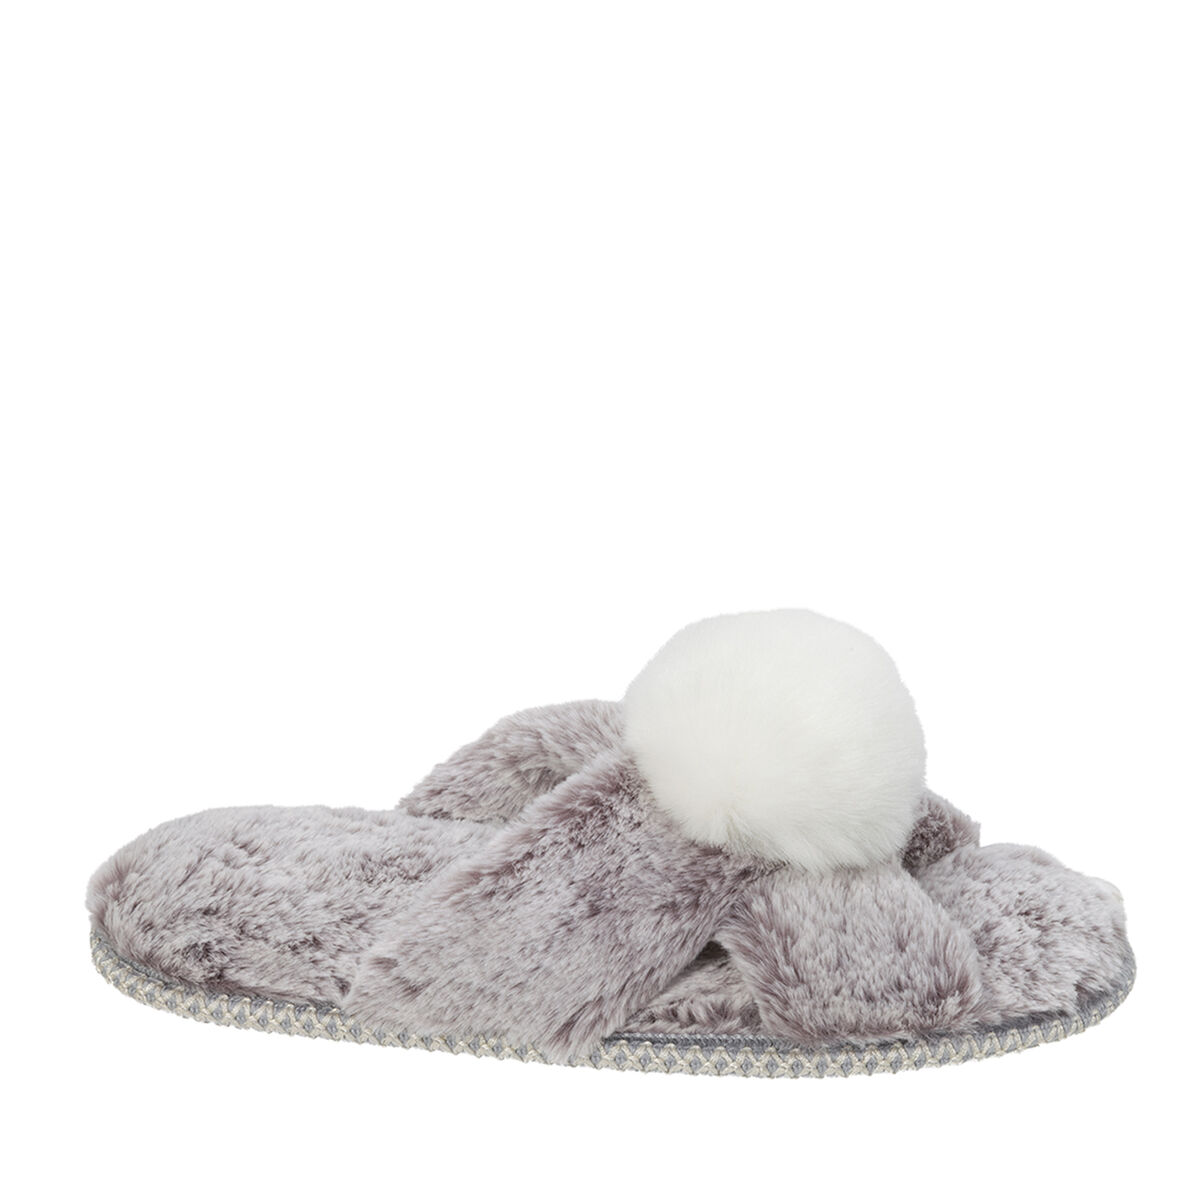 Women's X-Band Sculpted Pile Slide with Pom